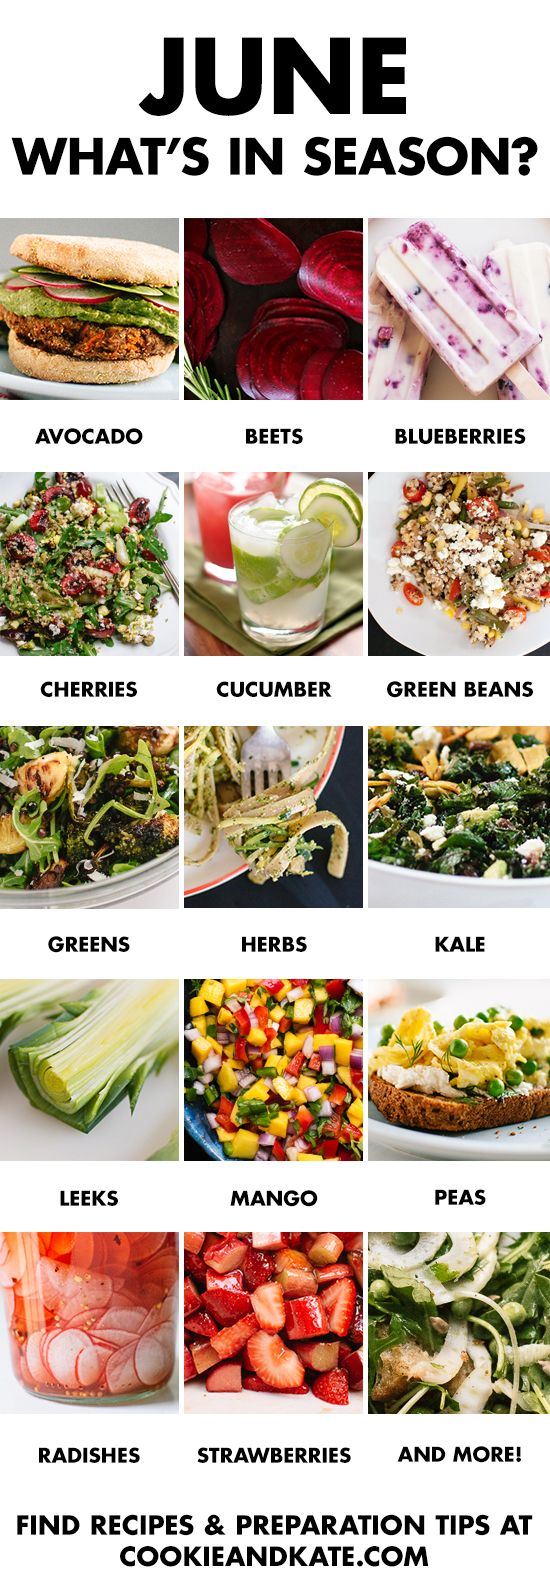 Eat seasonally with this guide to June fruits and vegetables. Find recipes and preparation tips at cookieandkate.com